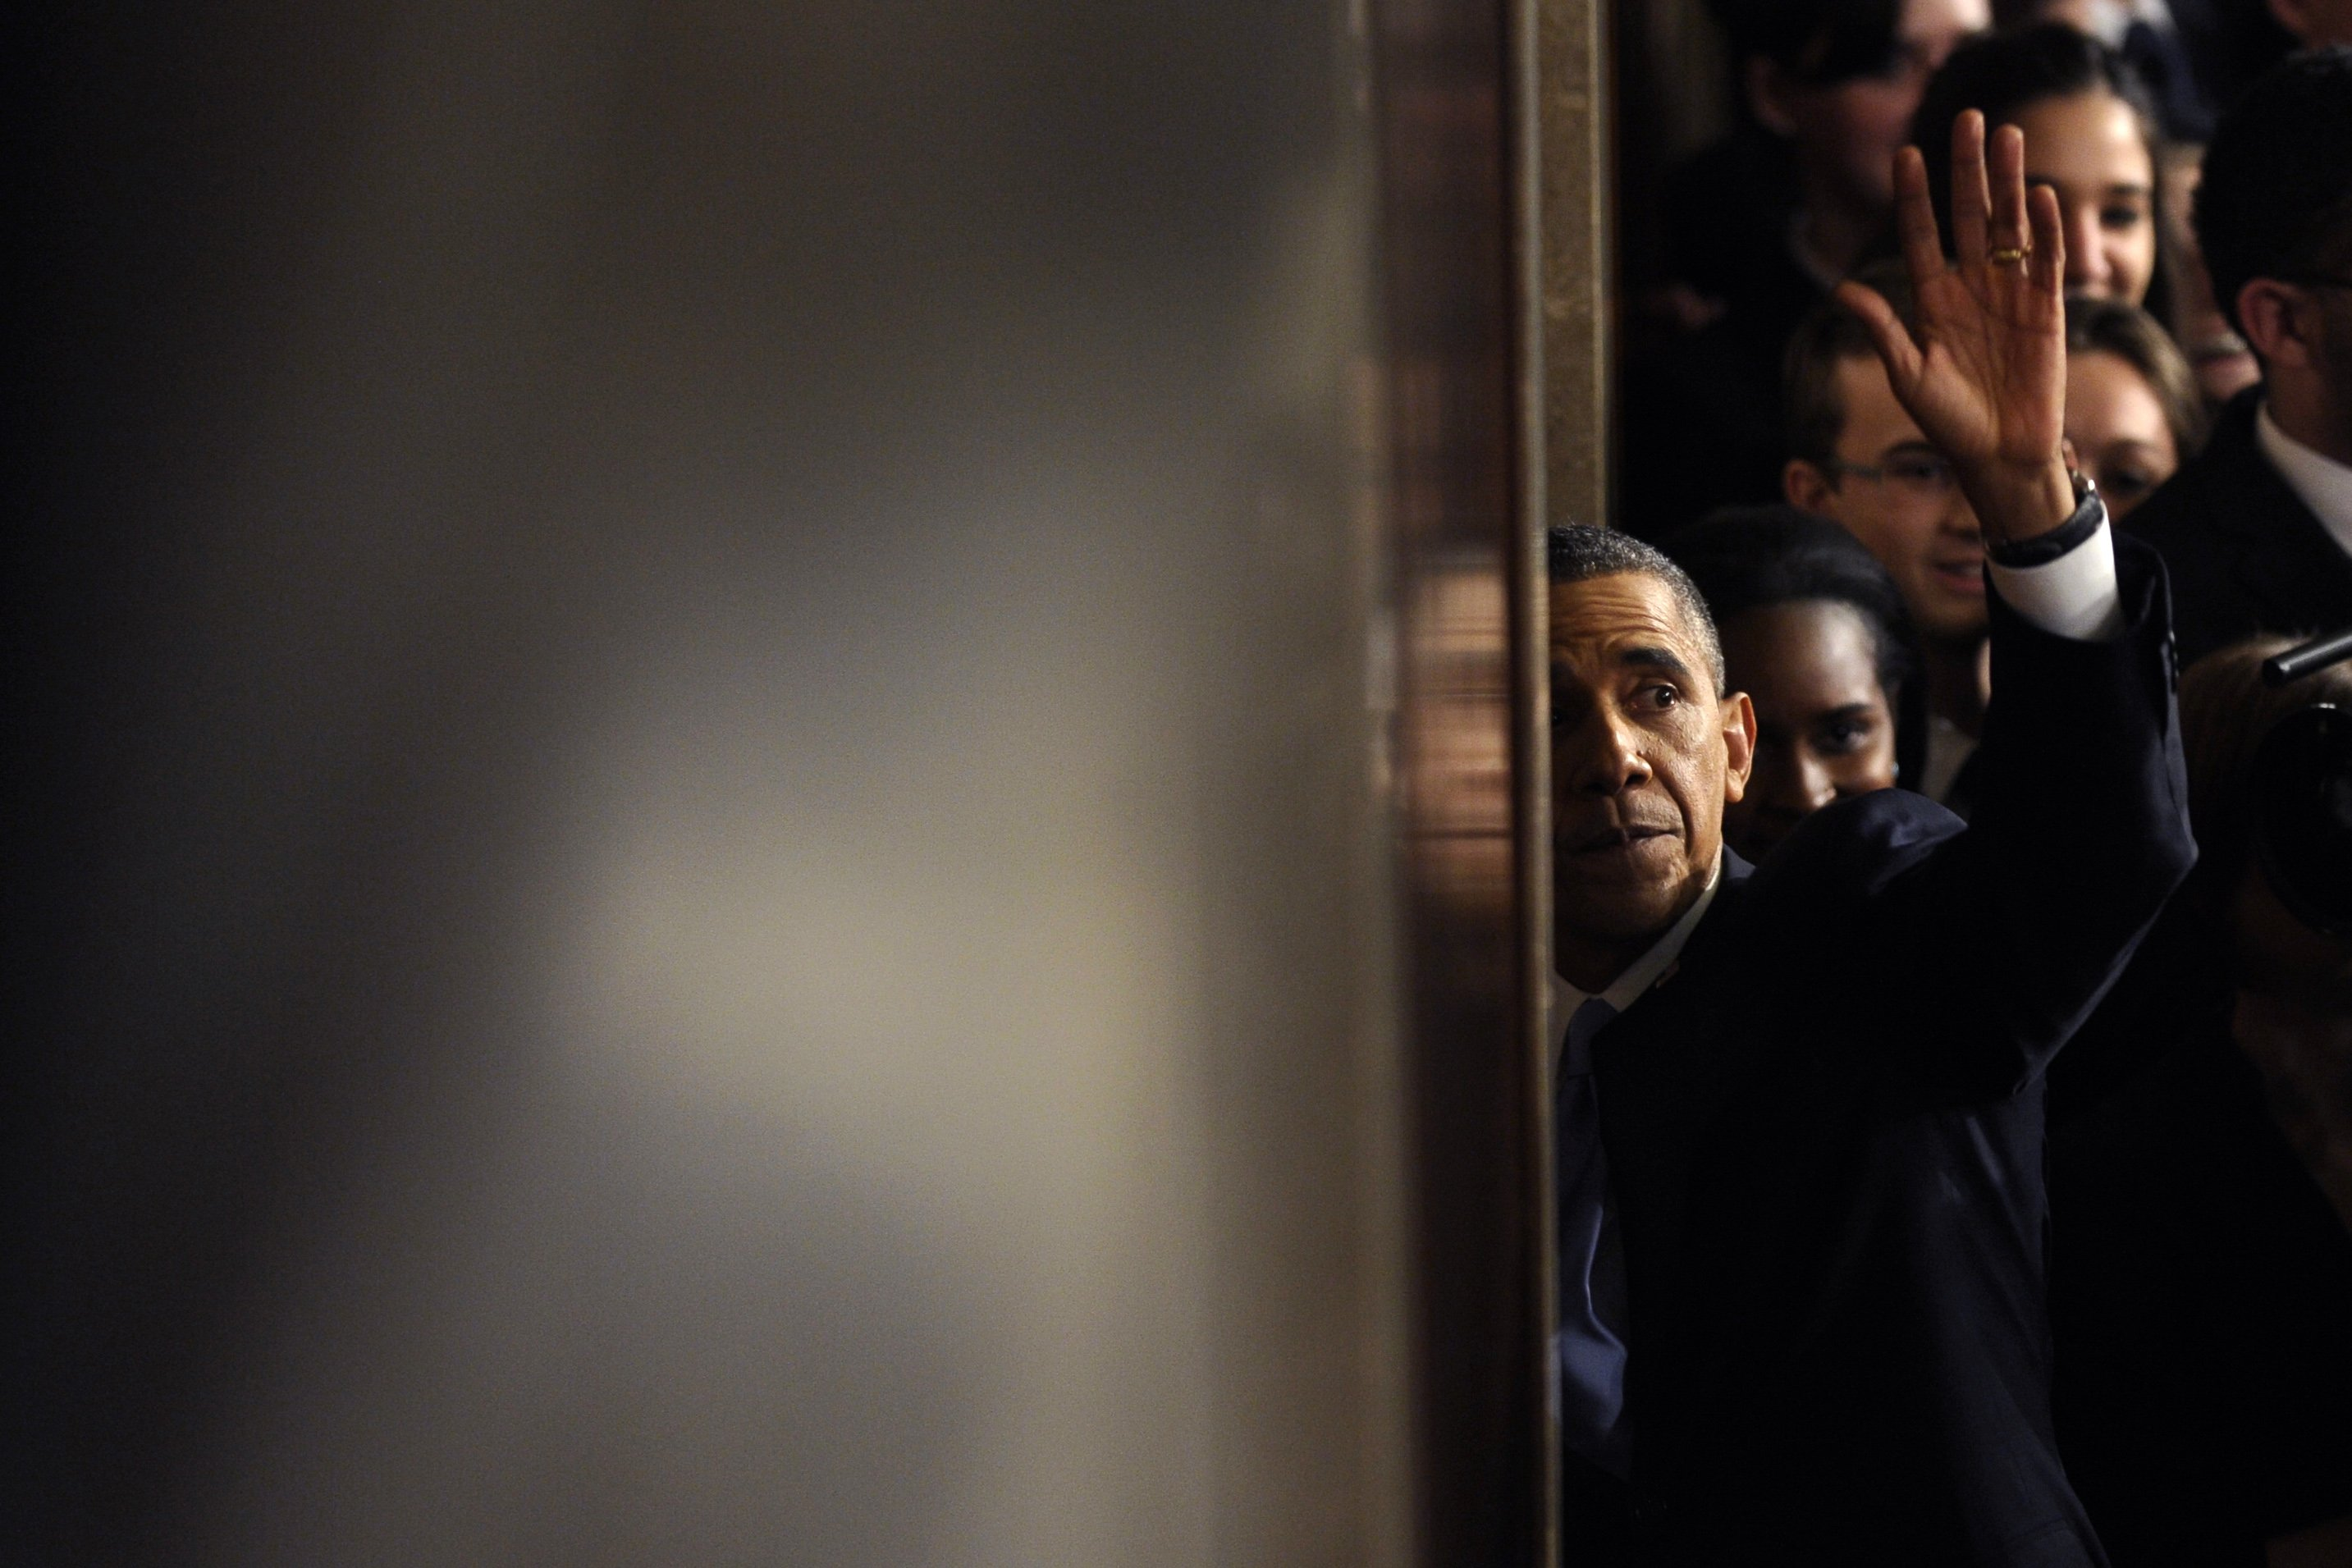 President Barack Obama waves as he walks through a door to leave the House chamber after giving his State of the Union address.